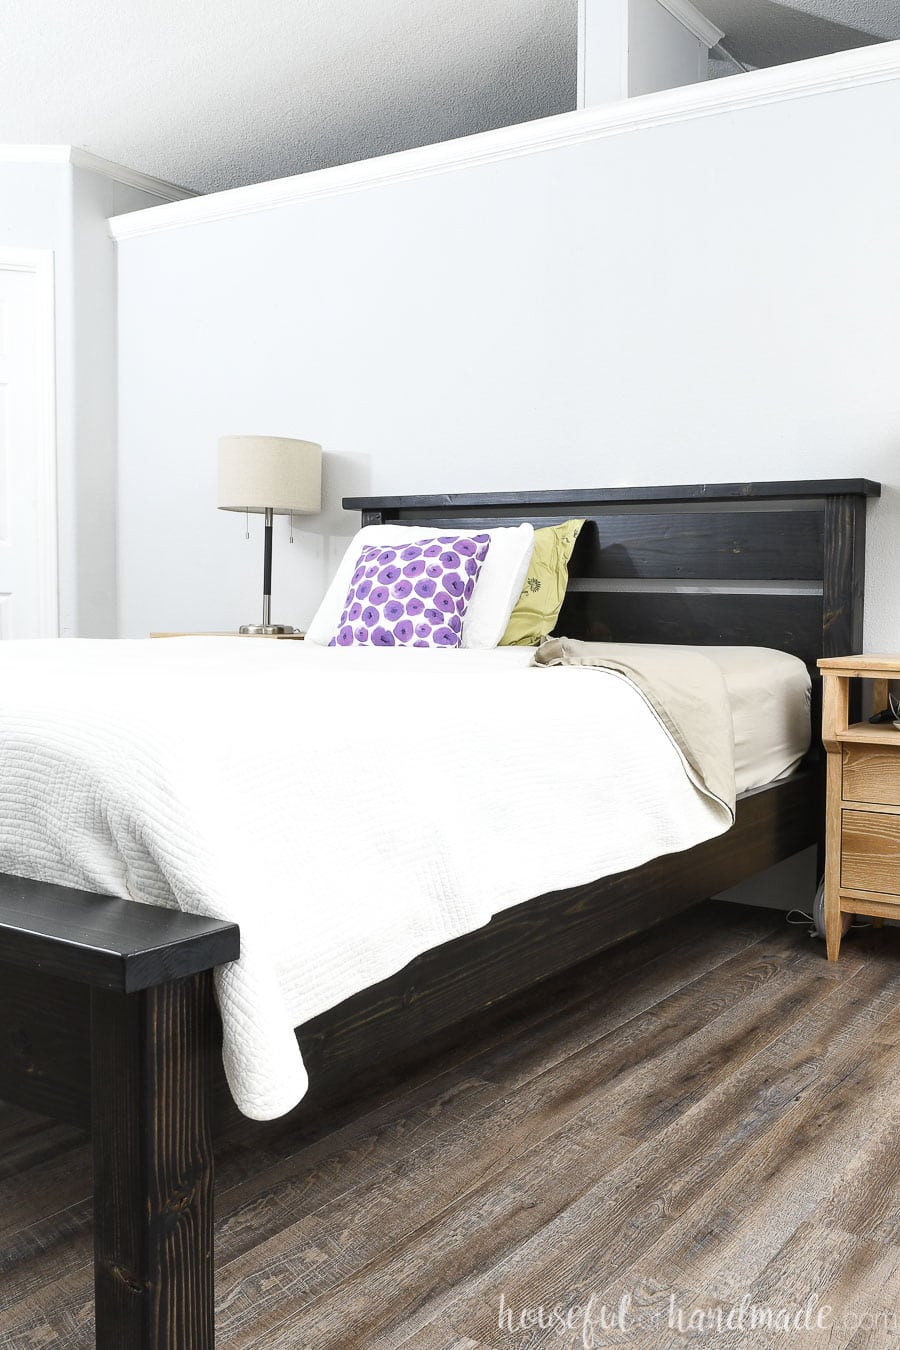 DIY Queen bed frame made from construction lumber and stained black dressed with white linens and colorful throw pillows.